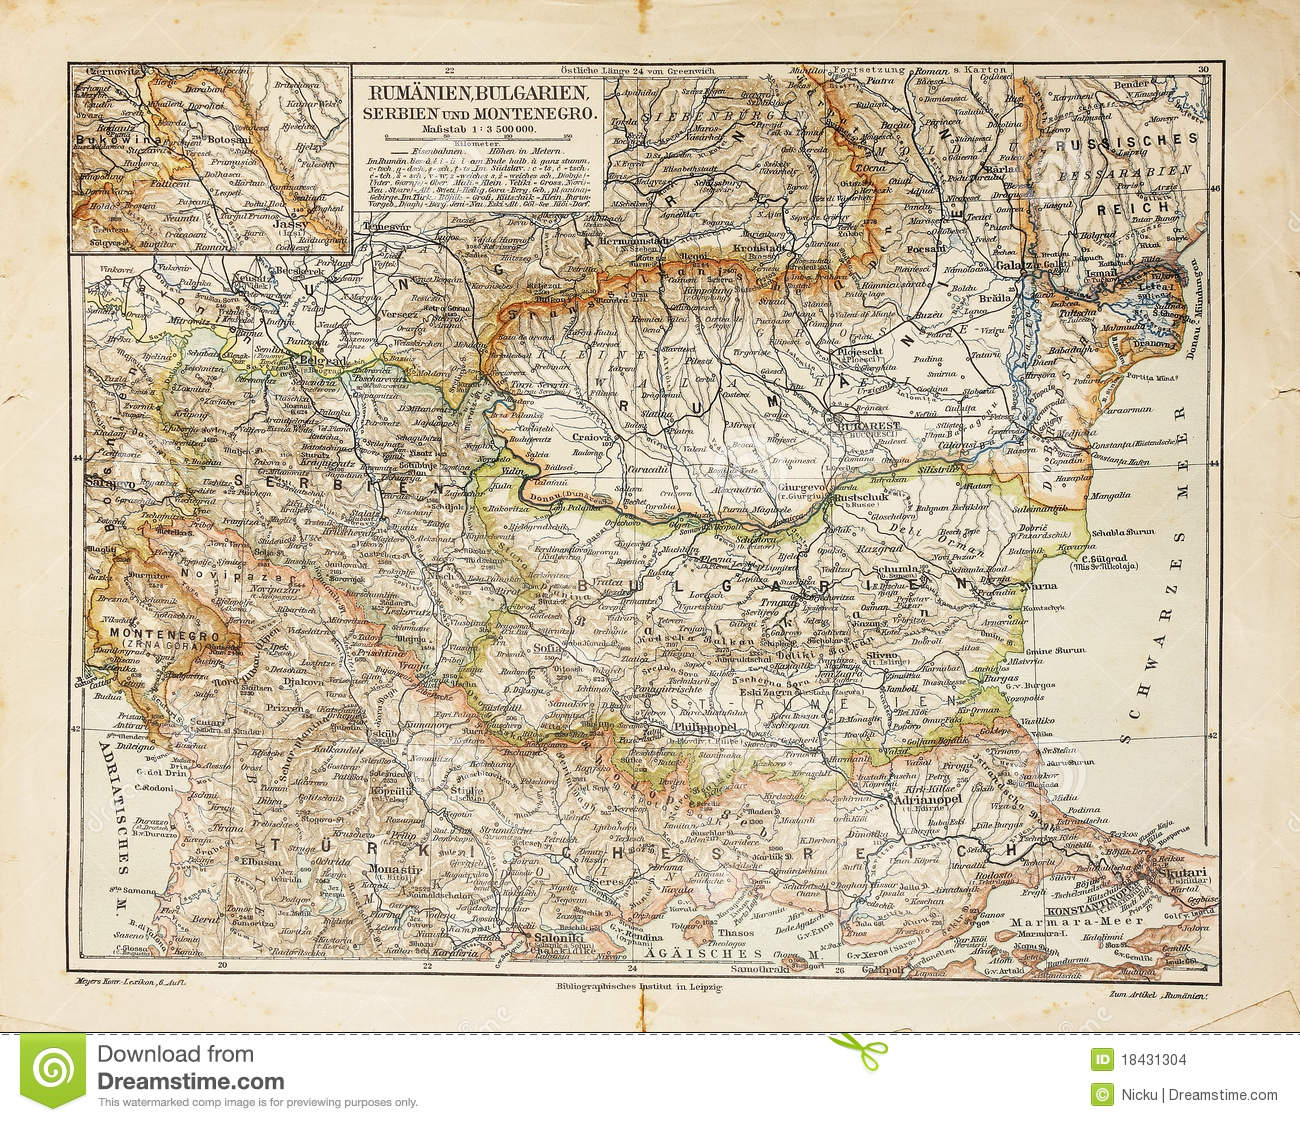 Eastern Europe old map stock photo. Image of ancient - 18431304